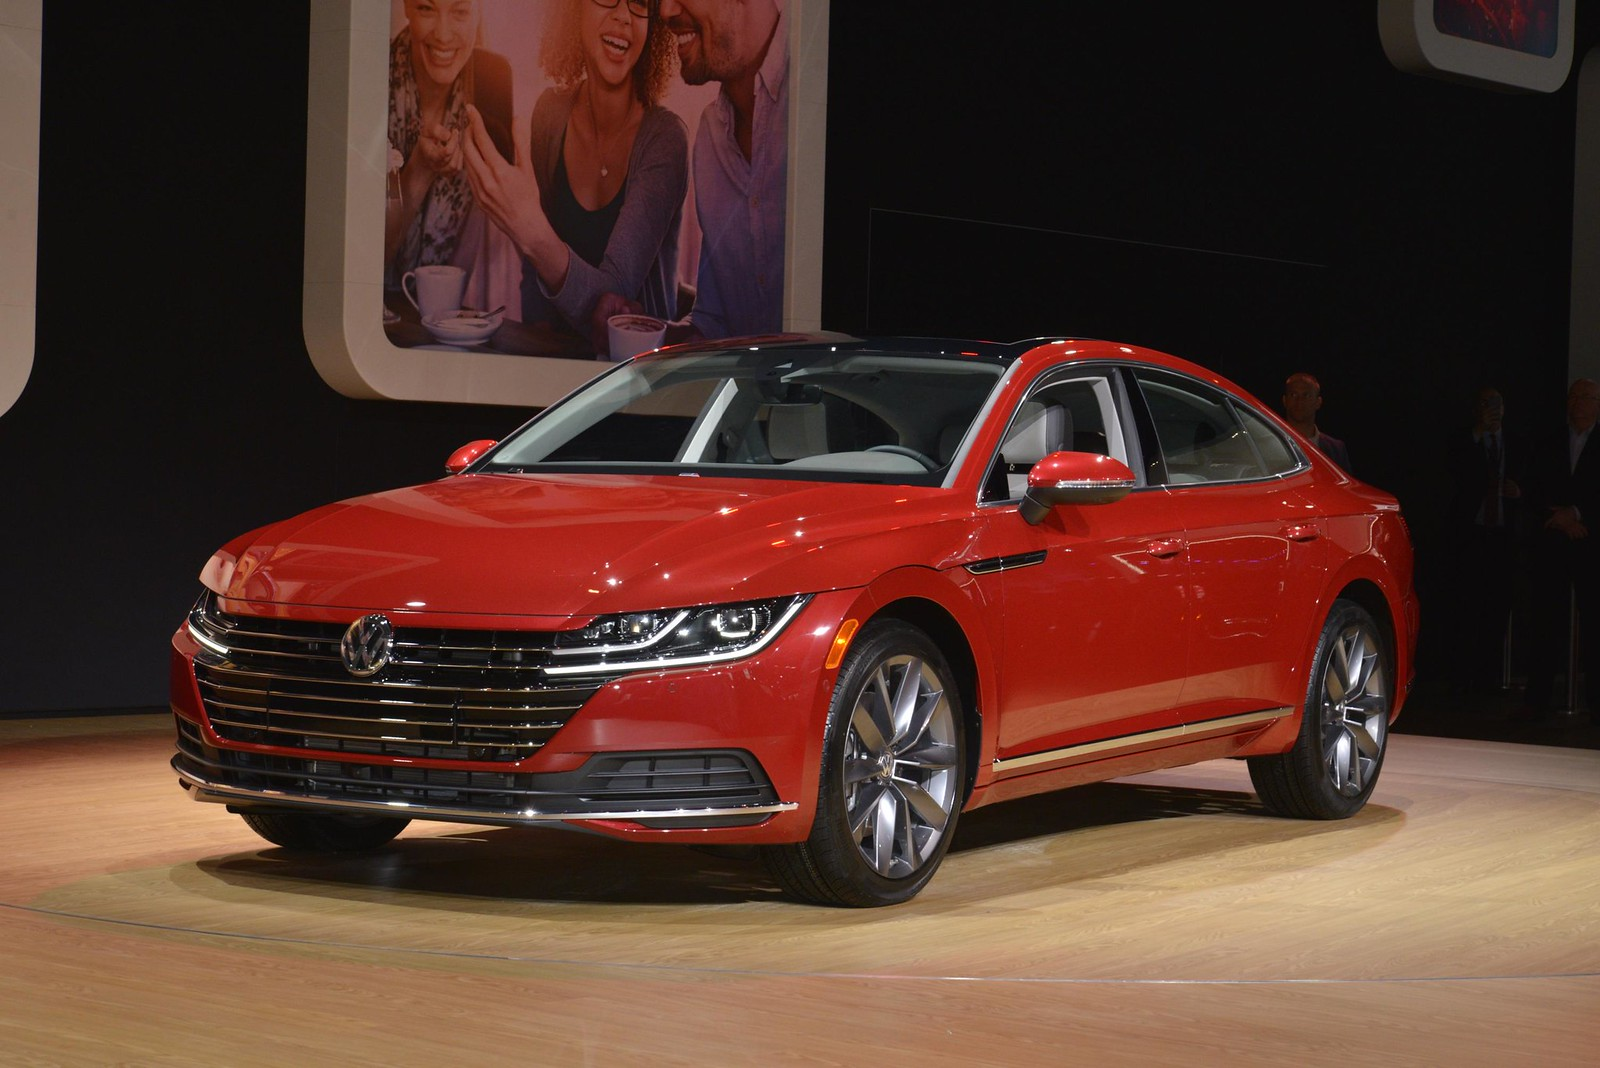 Volkswagen Arteon live photos: 2018 Chicago Auto Show